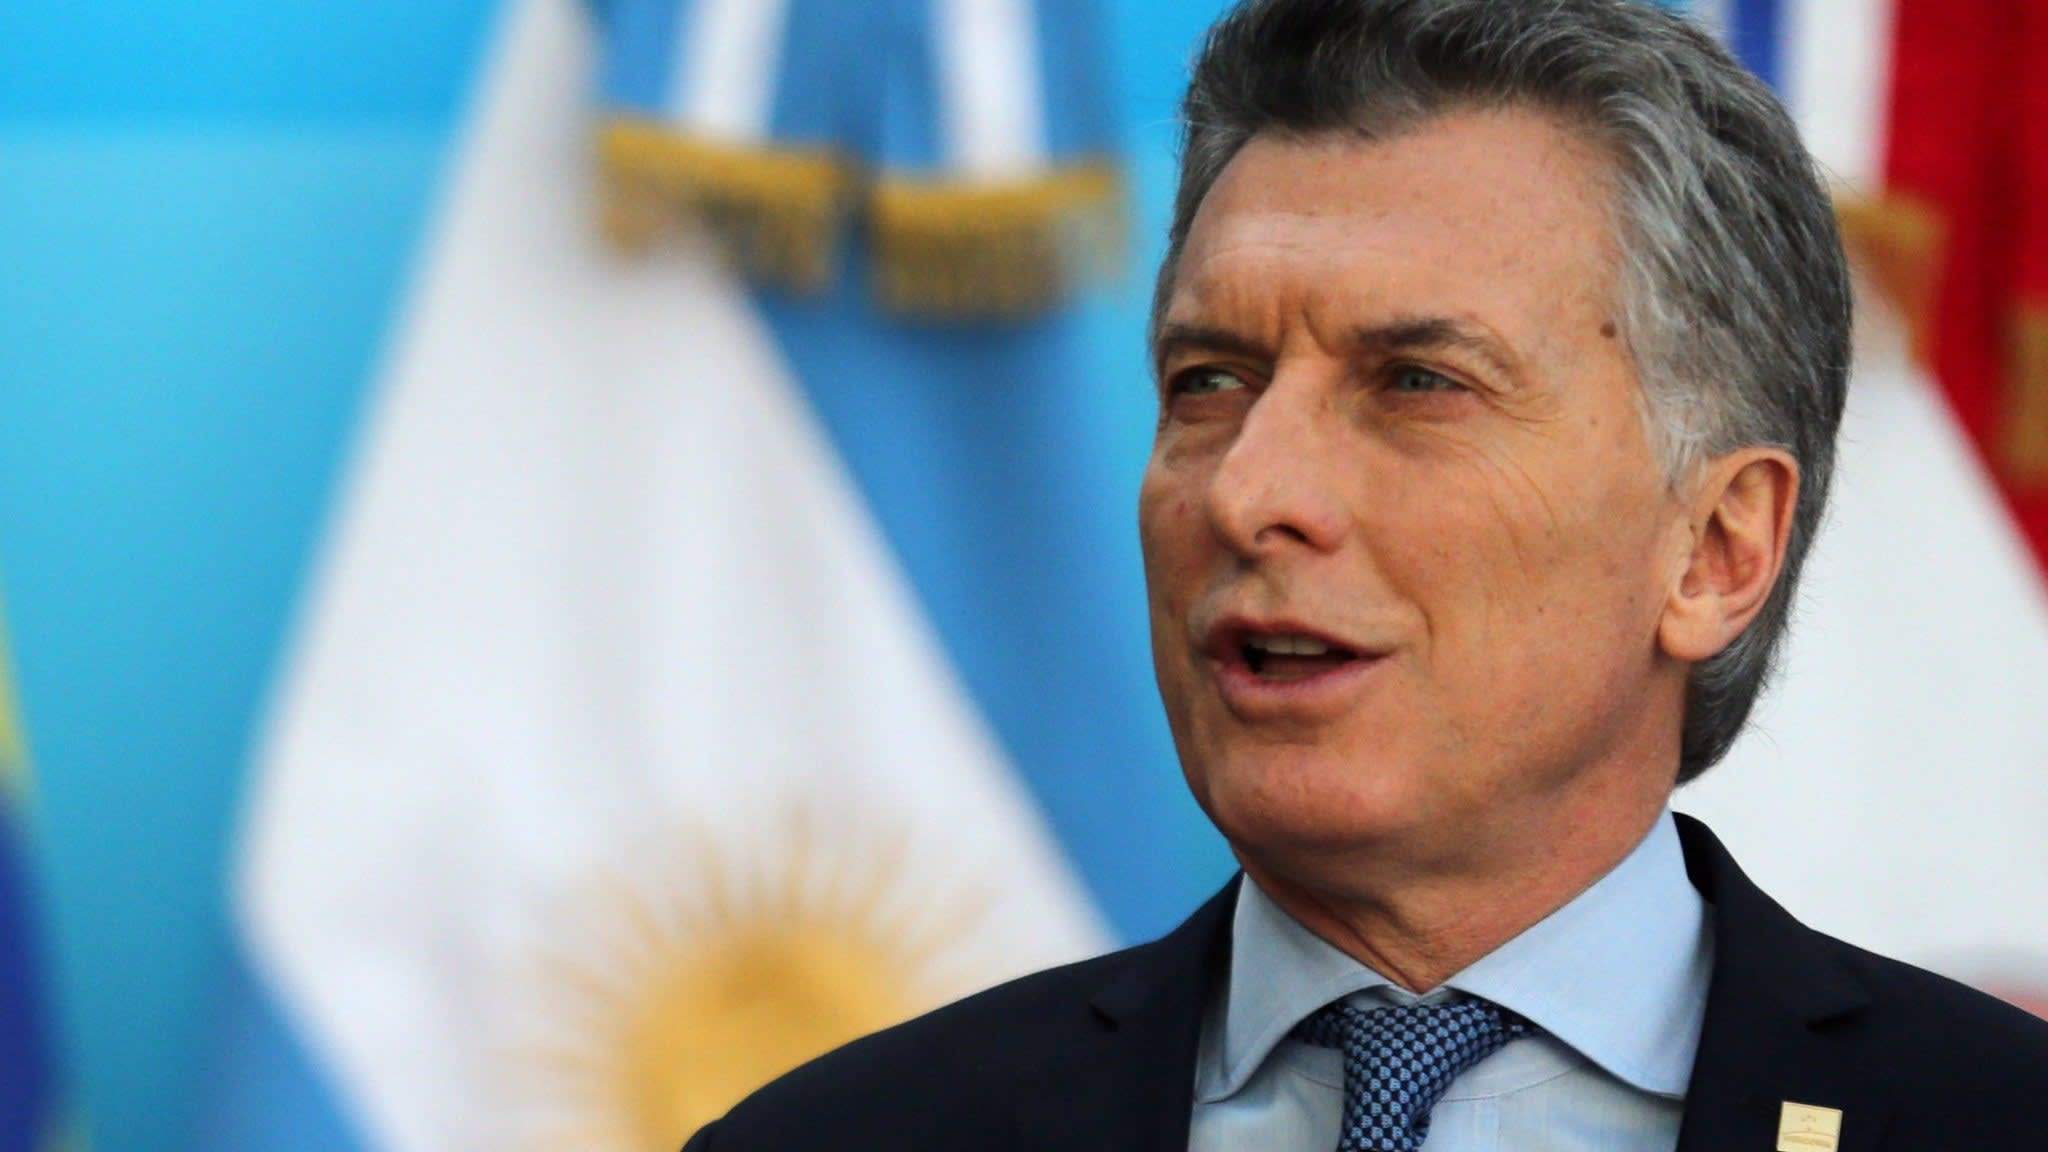 Argentina finds it harder to stick to IMF bailout plan